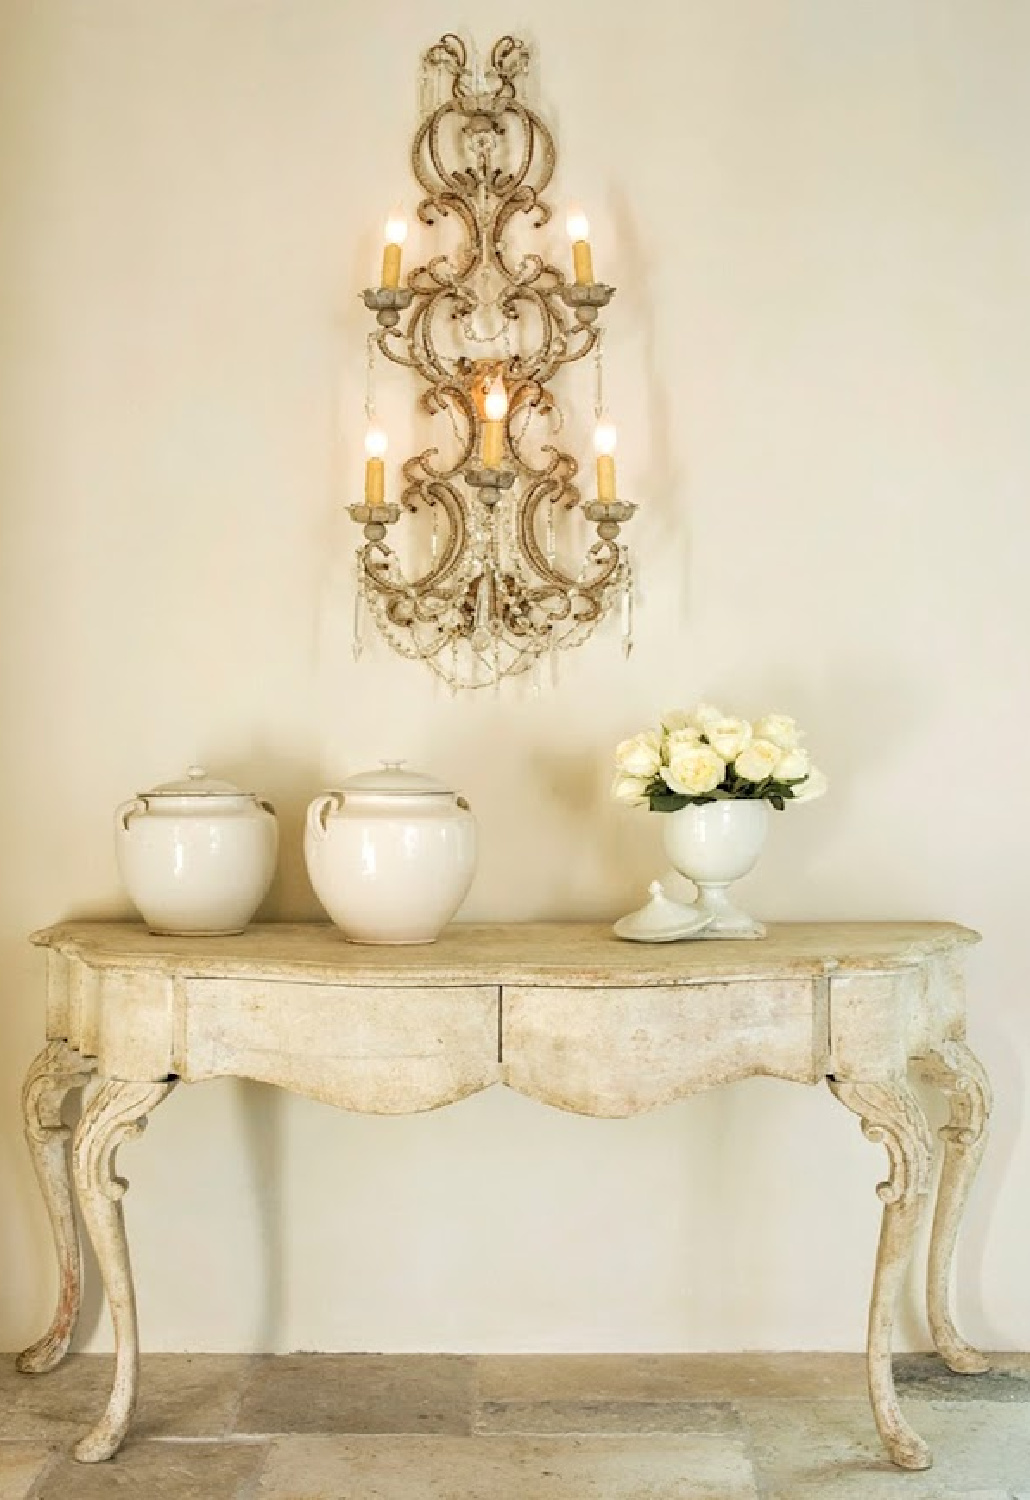 Pamela Pierce designed vignette. Come score ideas for a Timeless and Tranquil European Country Inspired Look. #europeancountry #interiordesign #frenchcountry